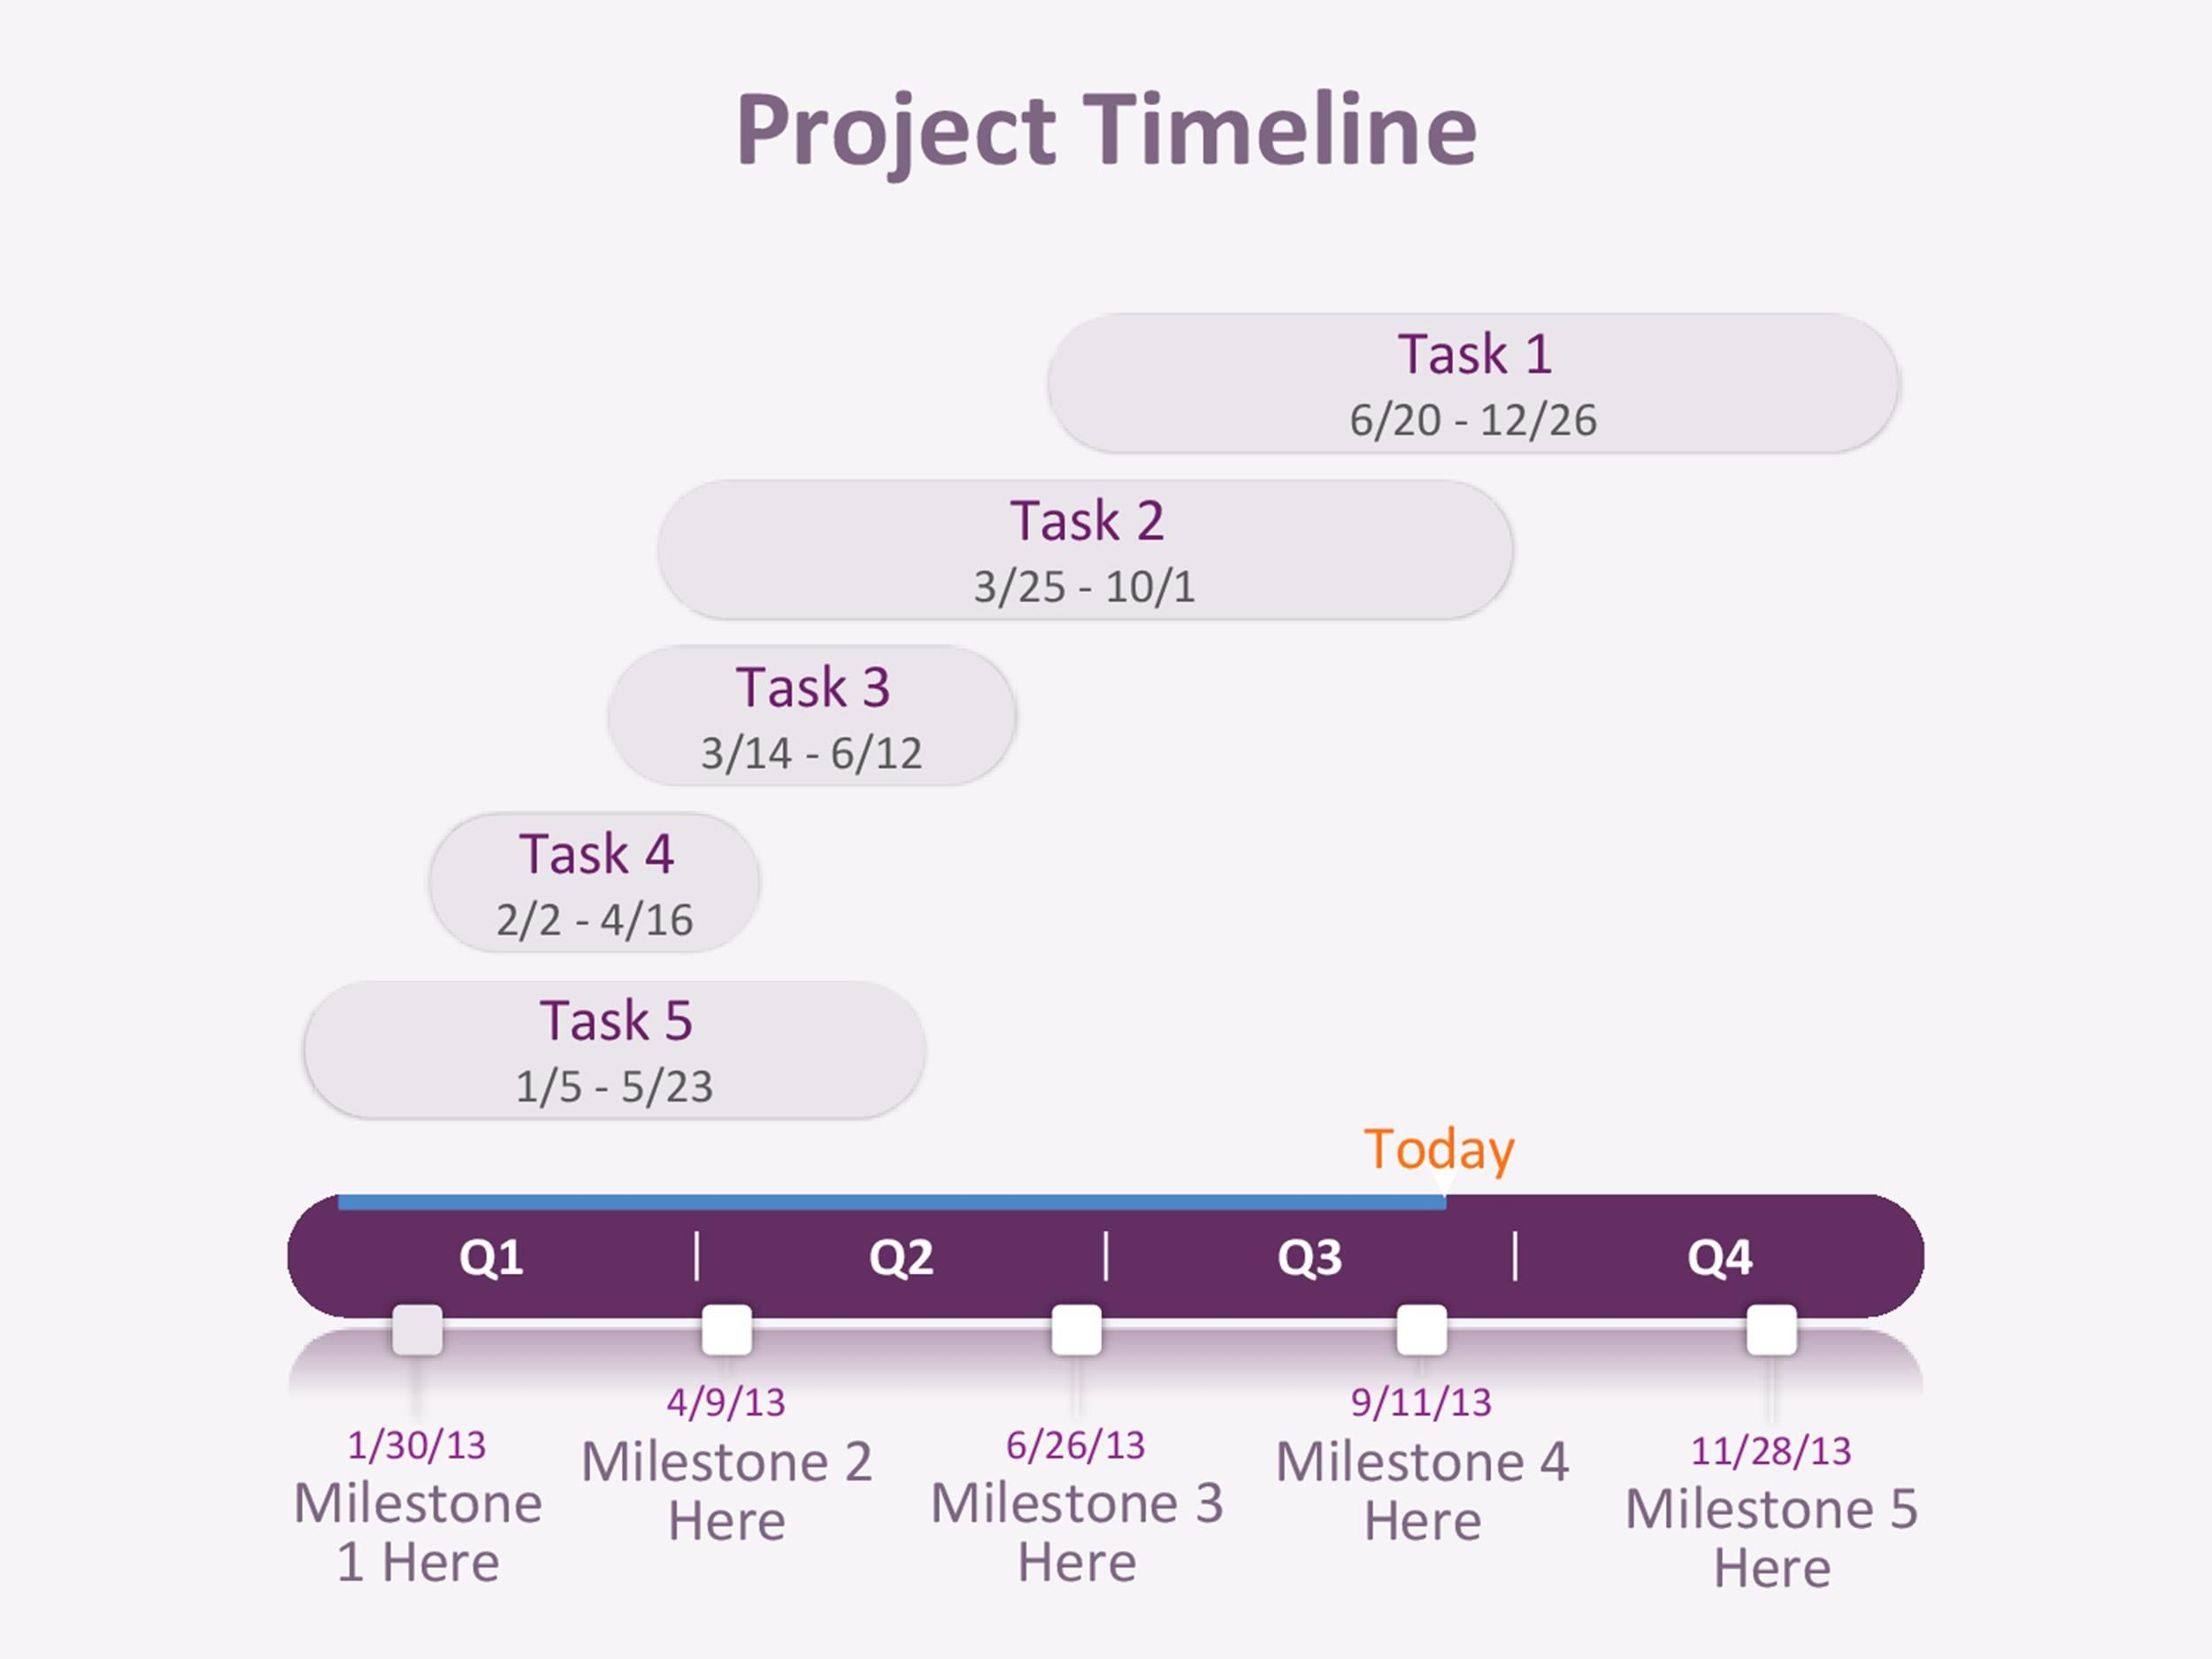 008 Fascinating Timeline Template In Word Picture  2010 Wordpres FreeFull